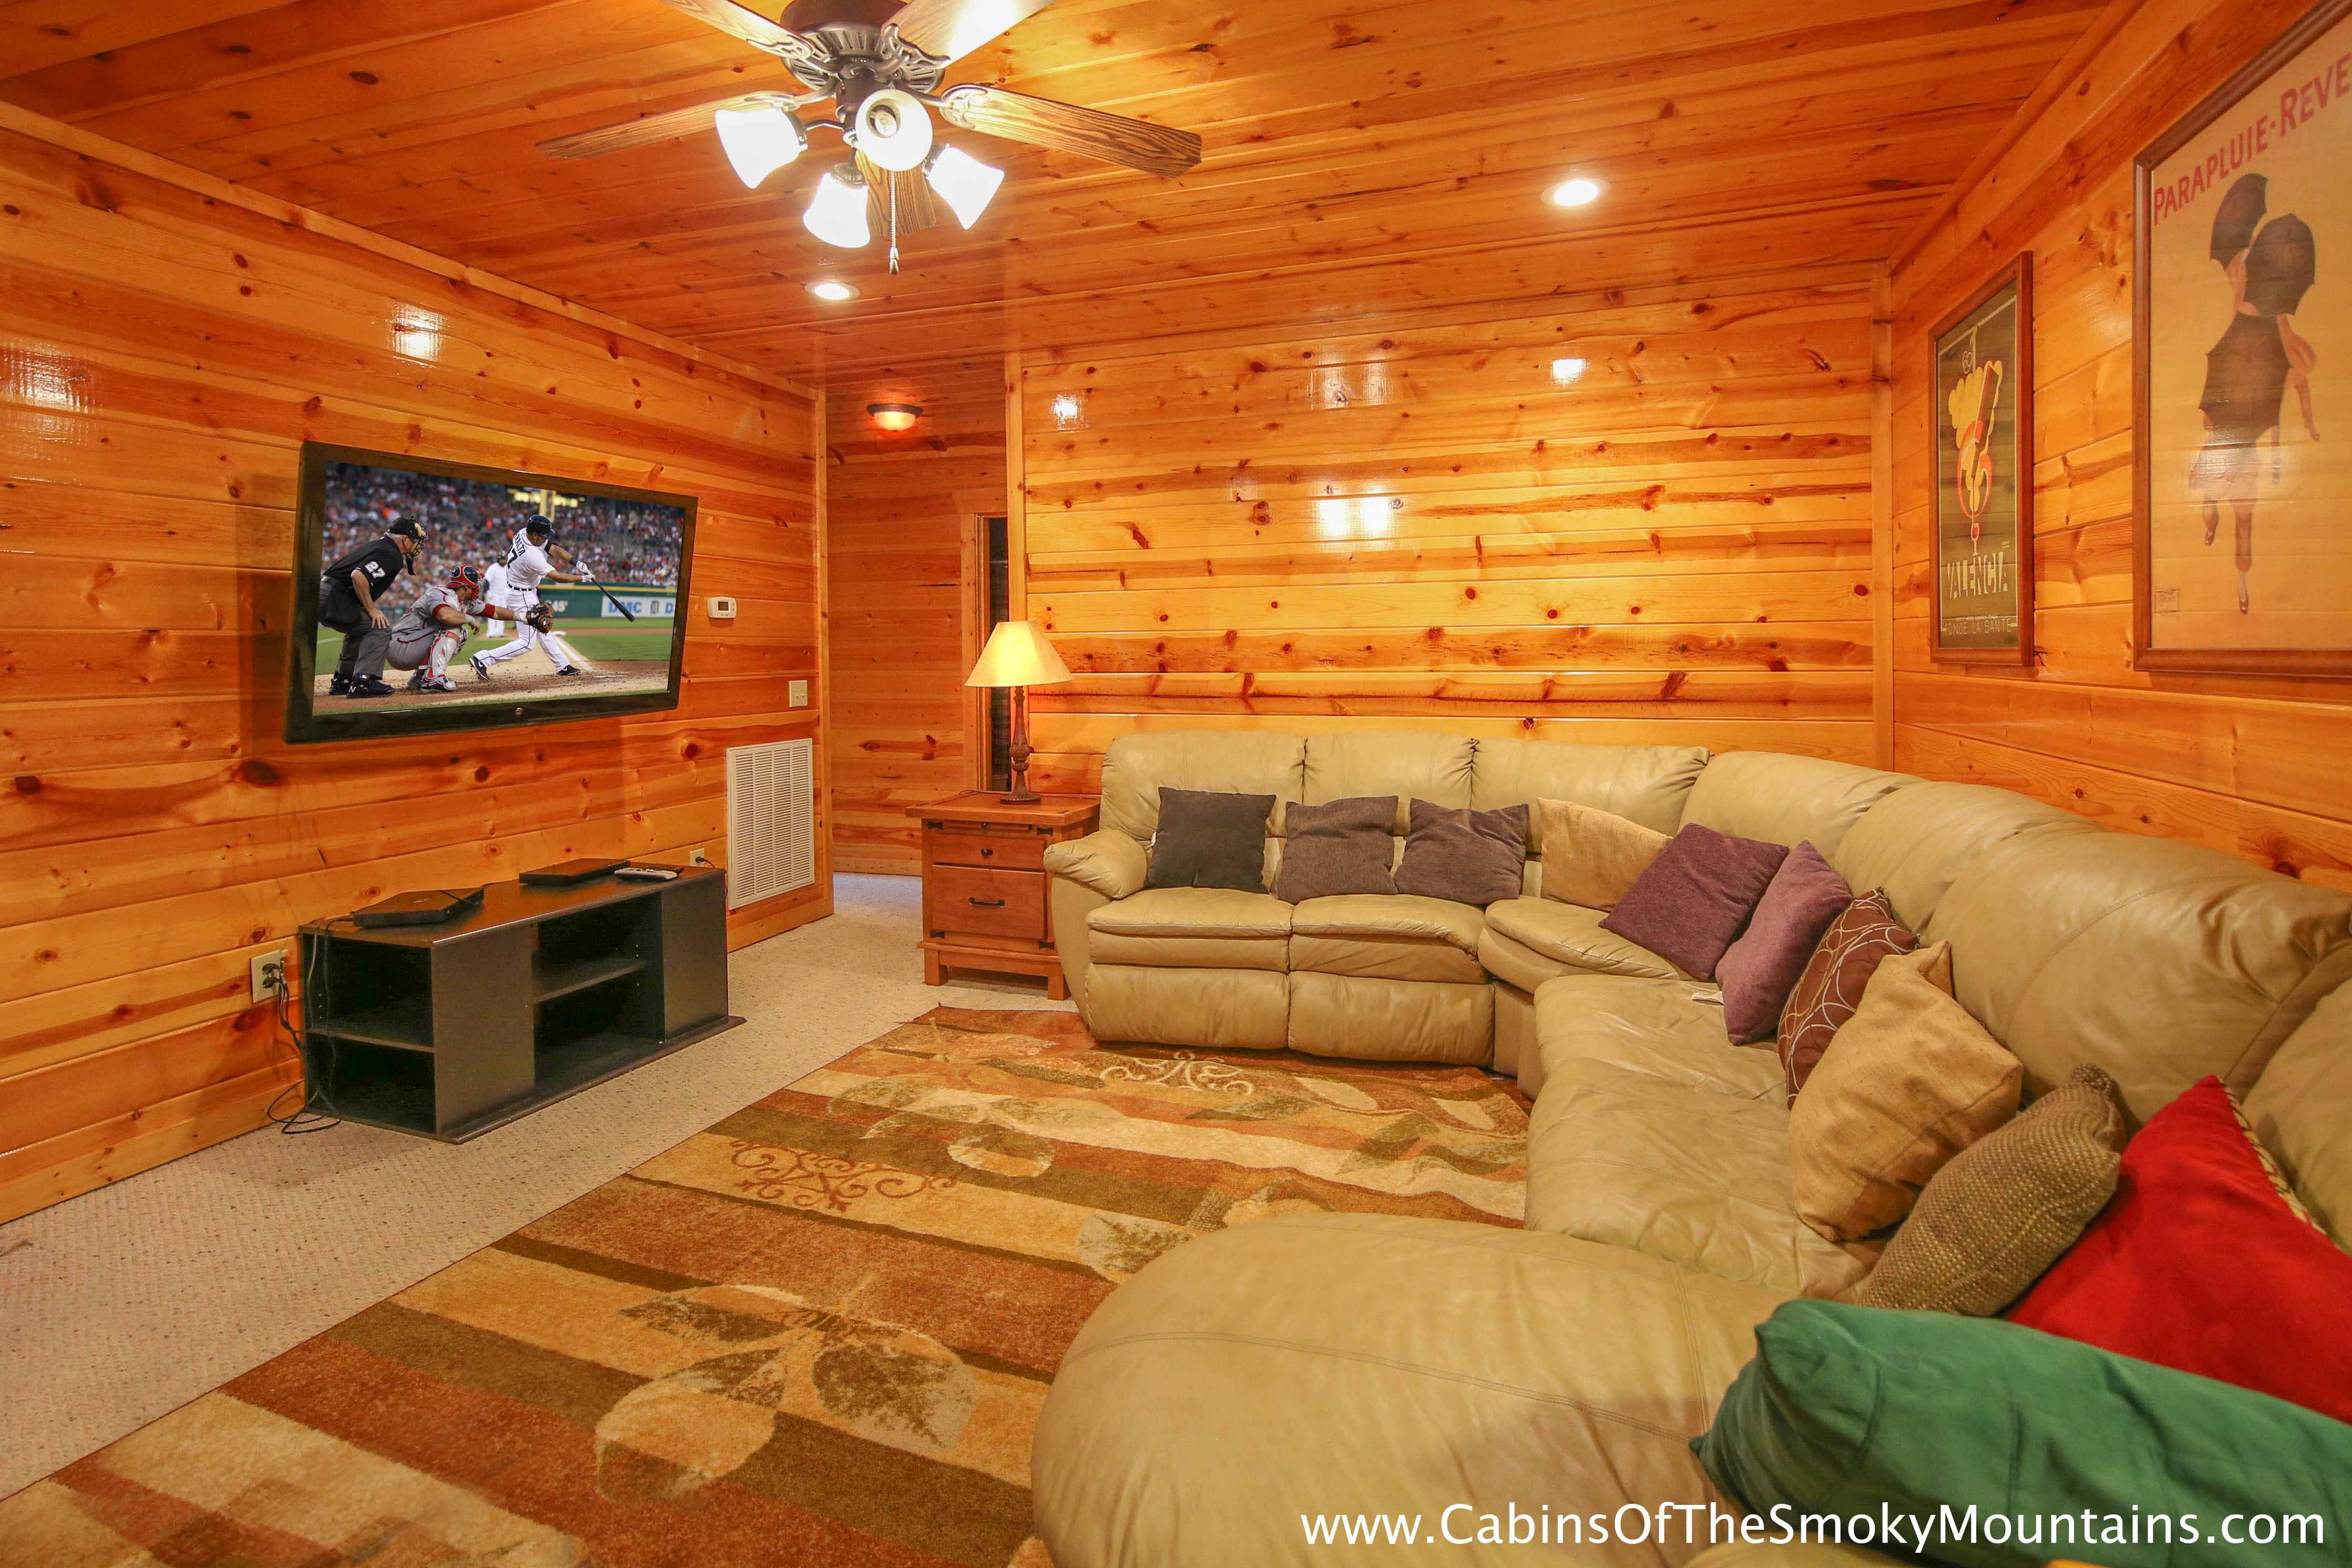 Pigeon forge cabin bearadise 5 bedroom sleeps 14 for Smoky mountain cabins with fishing ponds